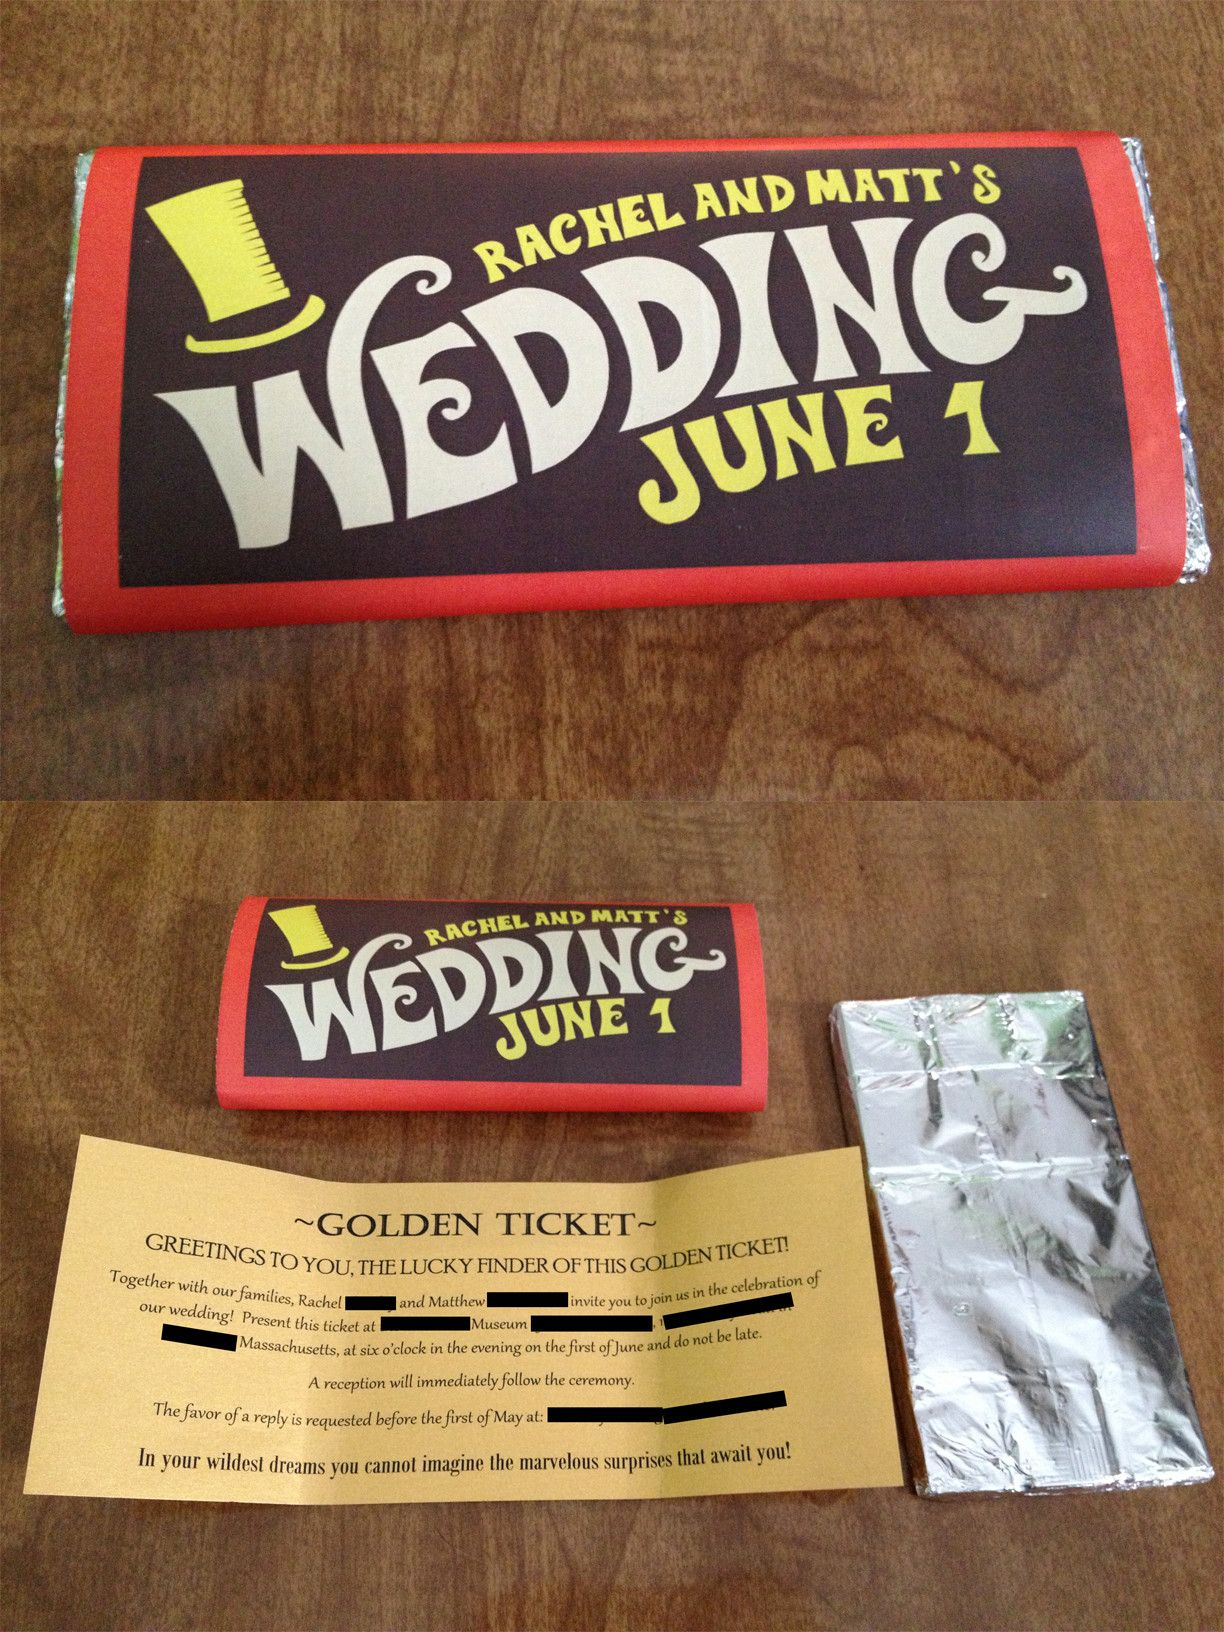 24 Adorably Geeky Wedding Invitations | Wedding, Weddings and Events